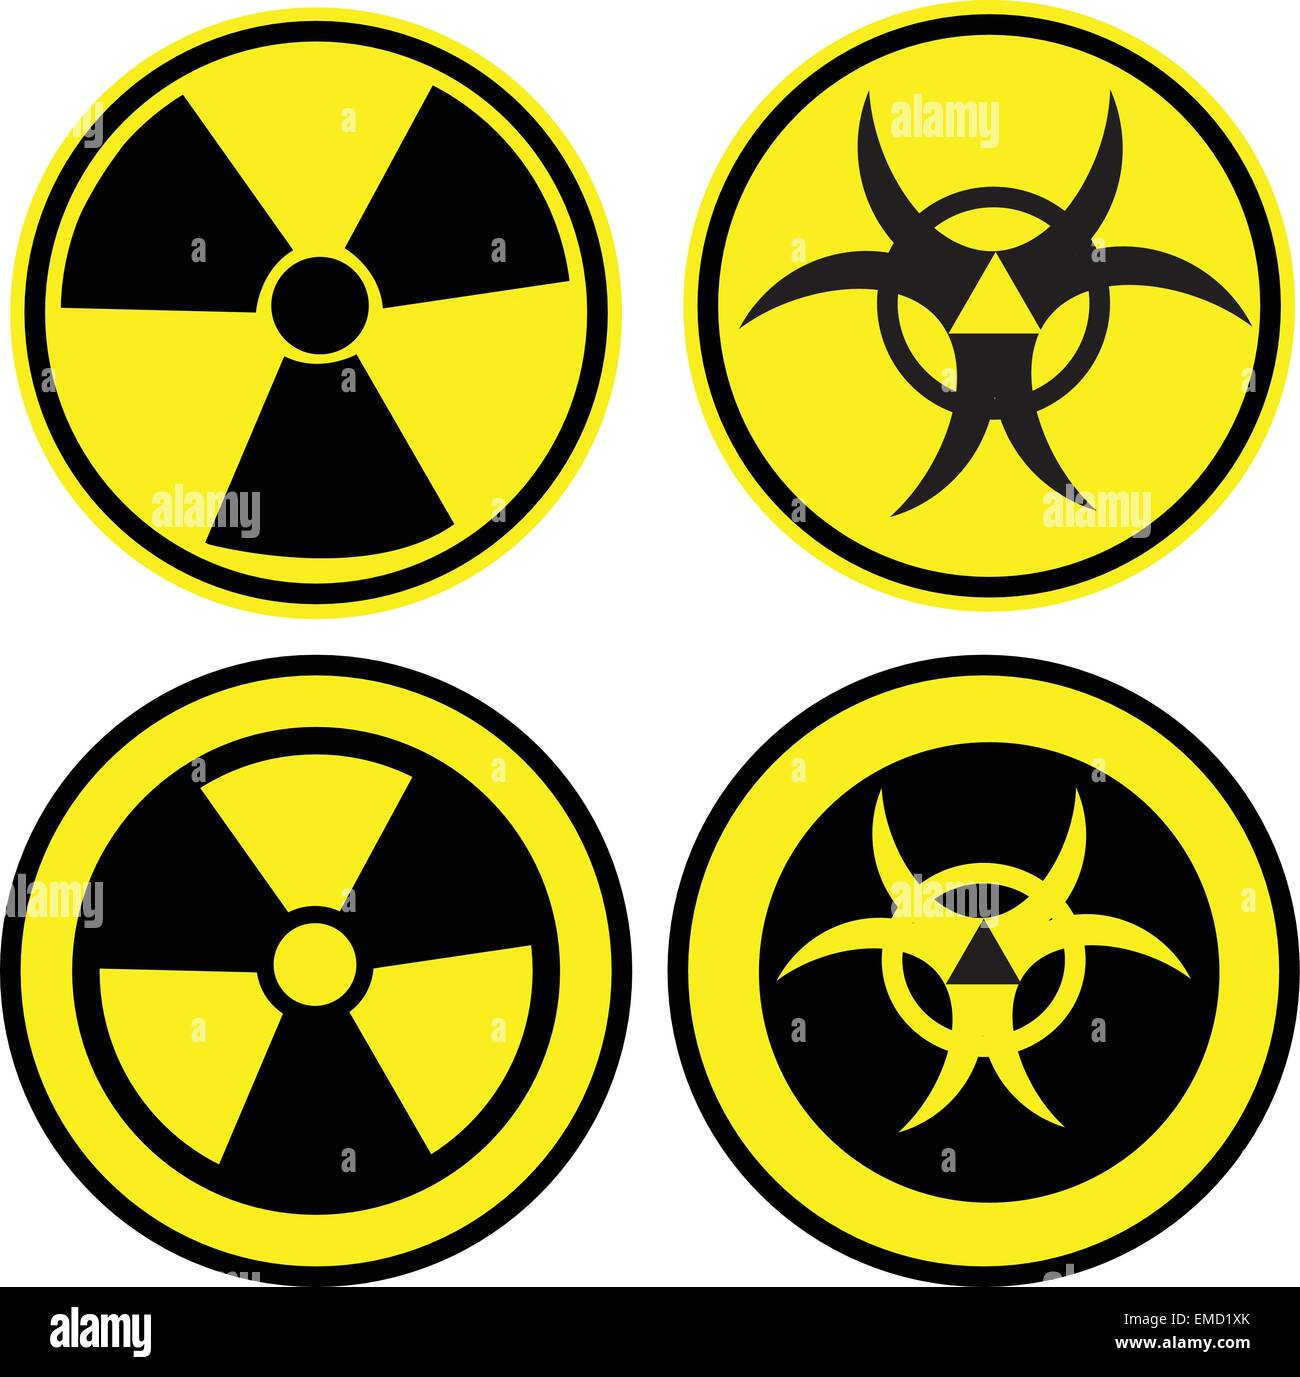 Hazard Symbols Chemical Stock Photos Hazard Symbols Chemical Stock